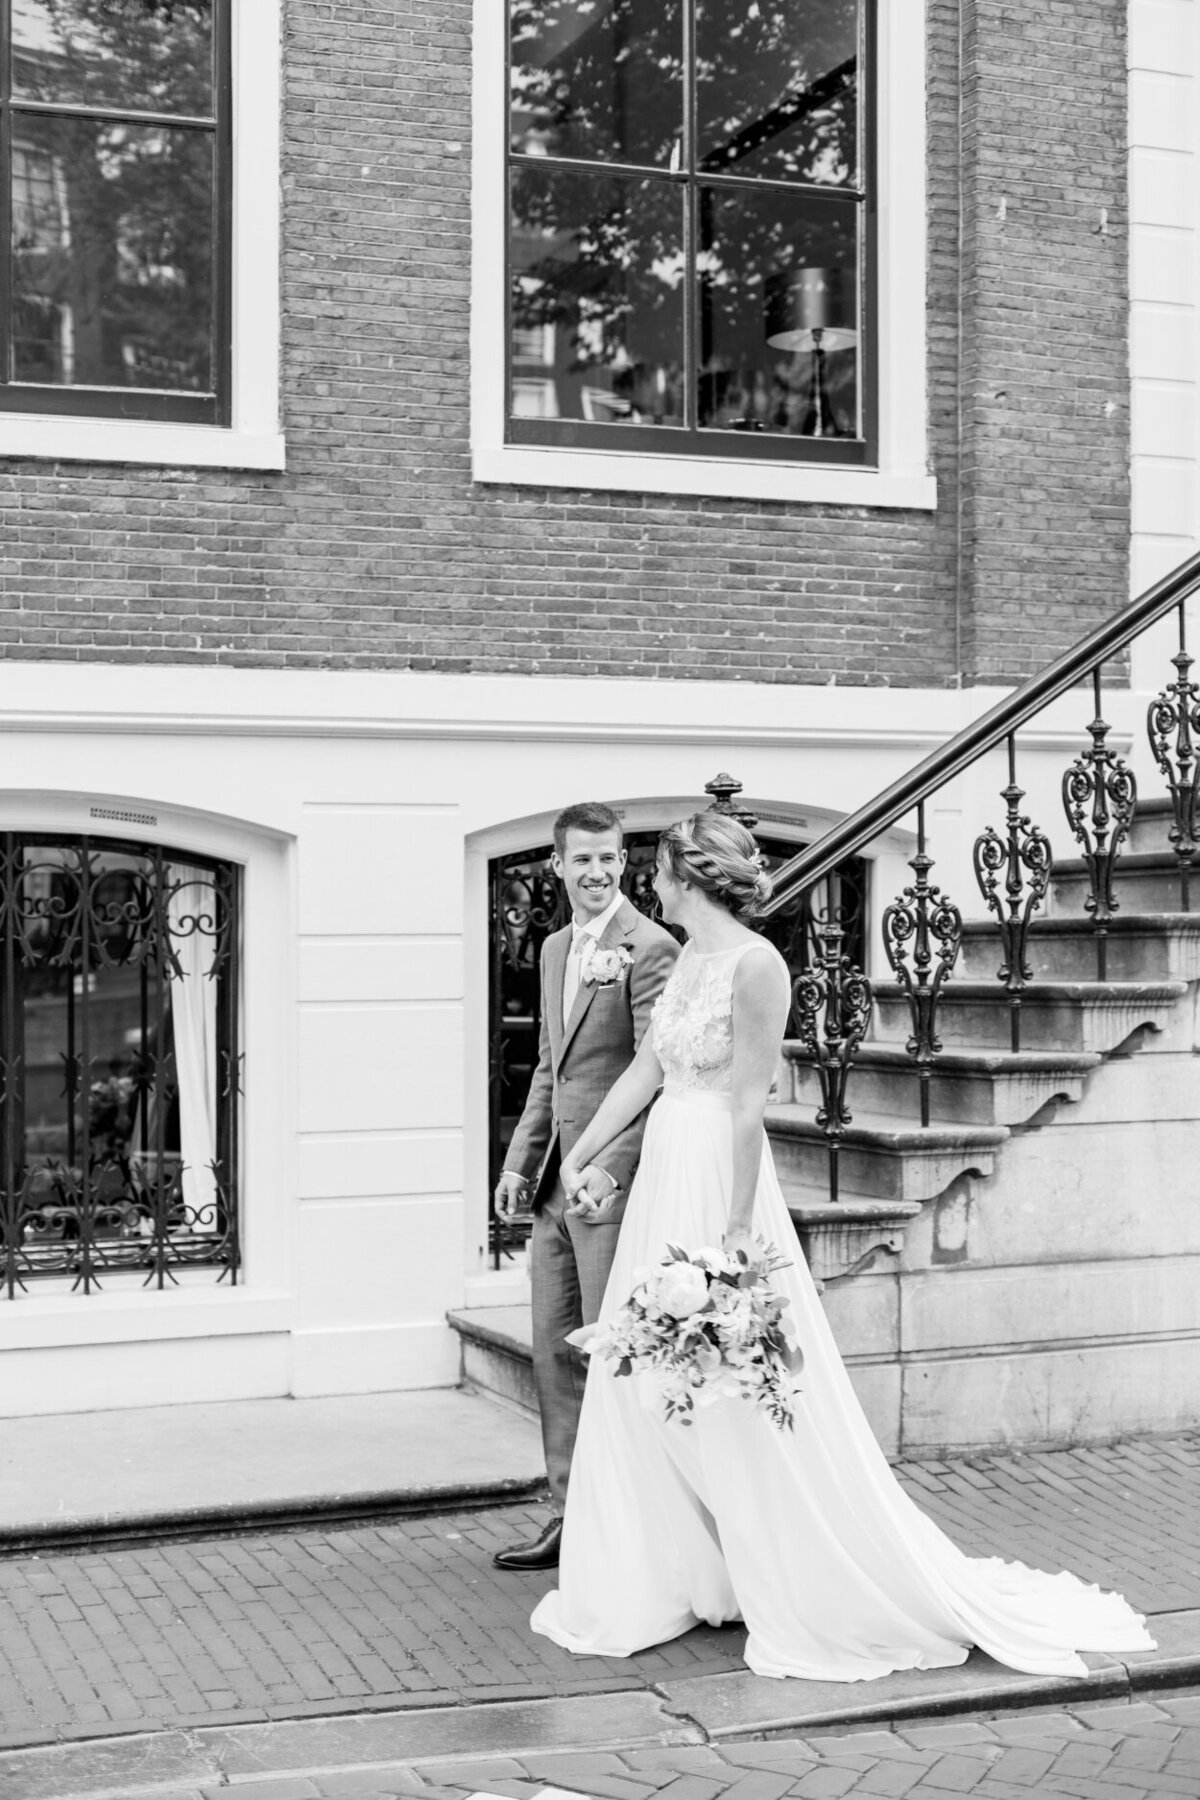 Black and white wedding portrait of the bride and groom in Amsterdam for their city elopement for a photoshoot organized by Lovely & Planned